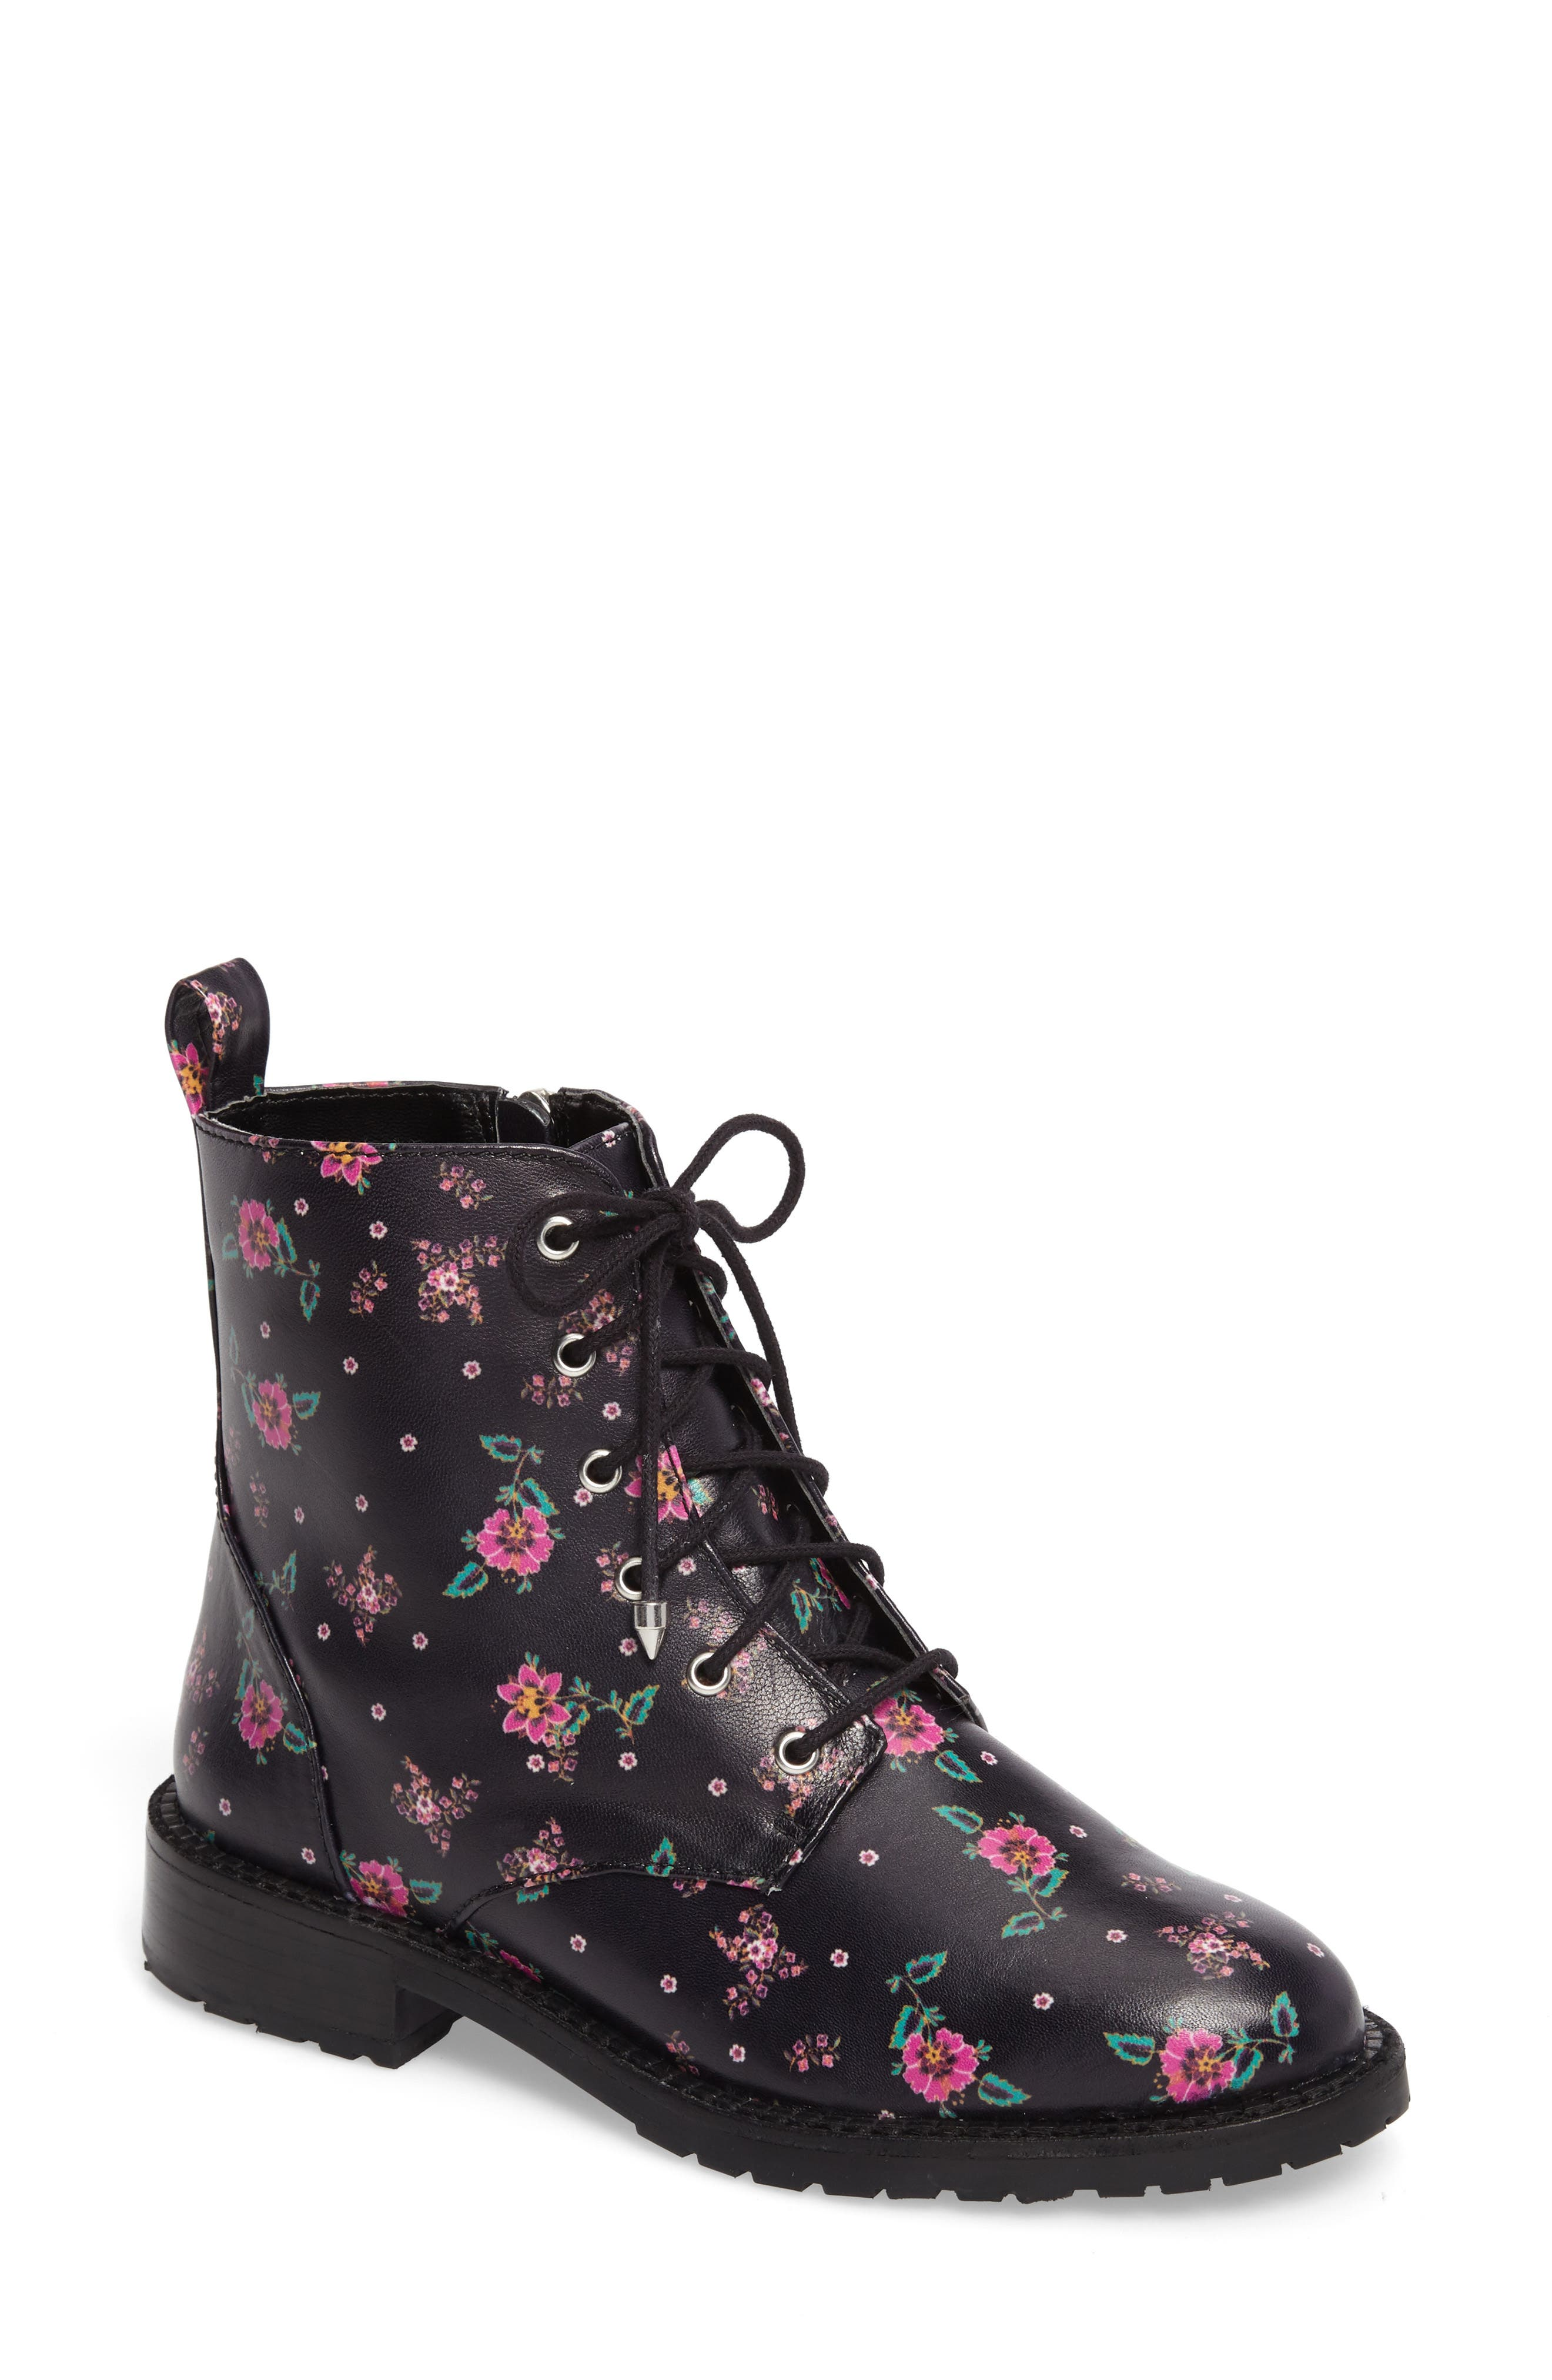 Gerry Lace-Up Boot,                             Main thumbnail 1, color,                             001